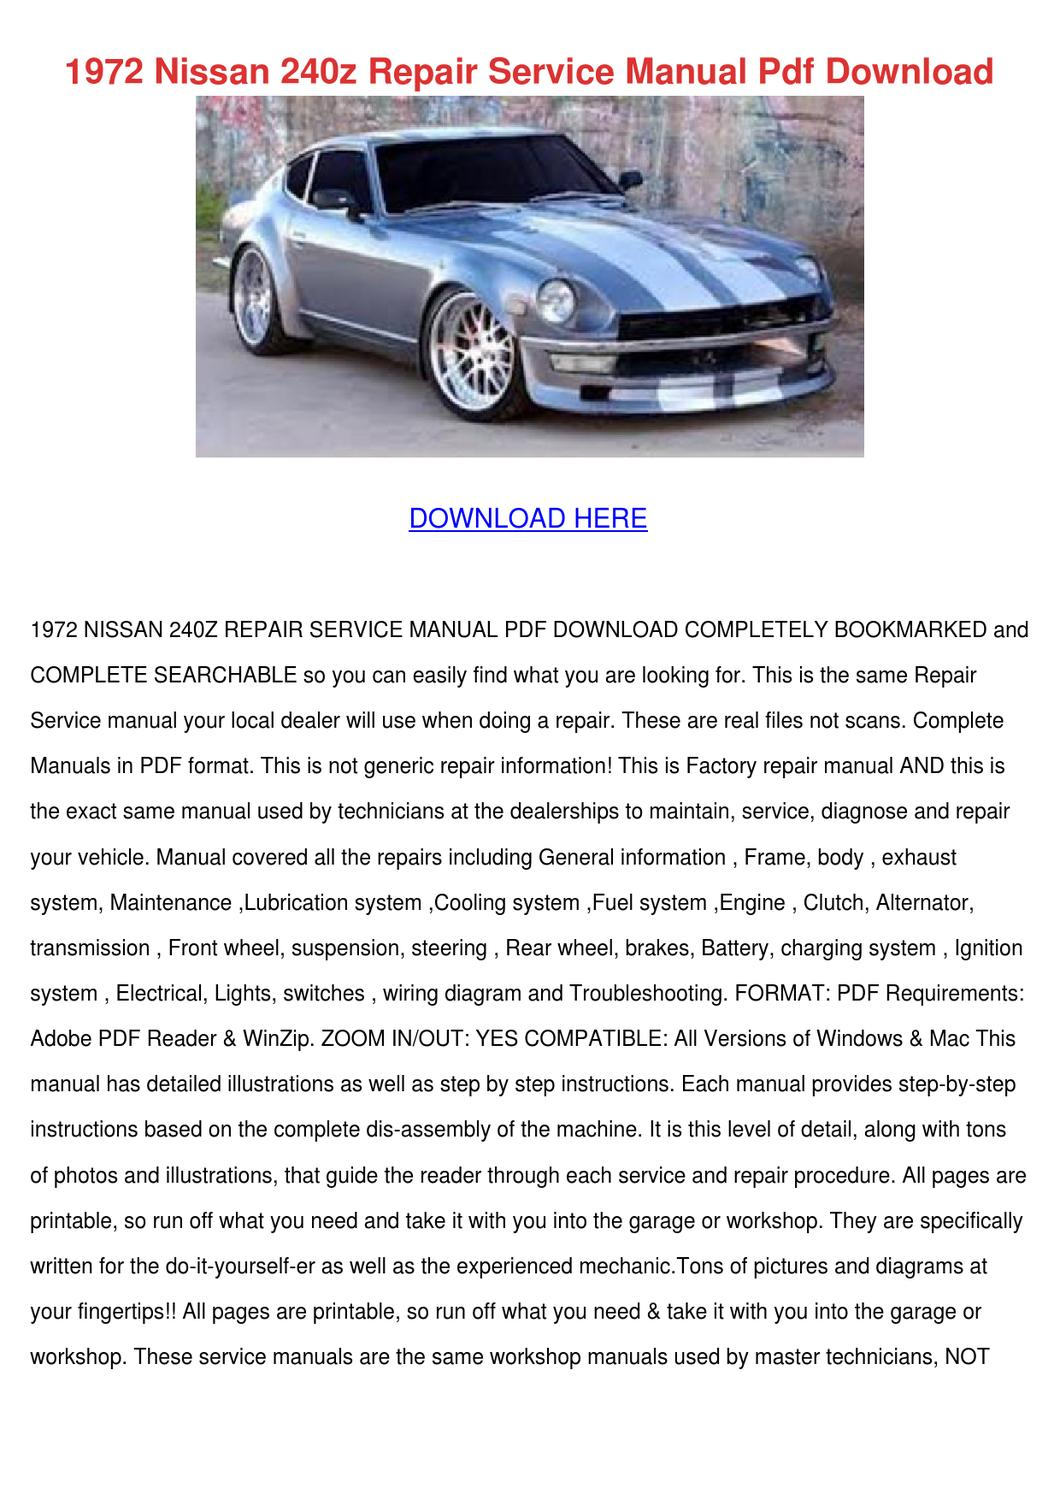 1972 Nissan 240z Repair Service Manual Pdf Do by ... on